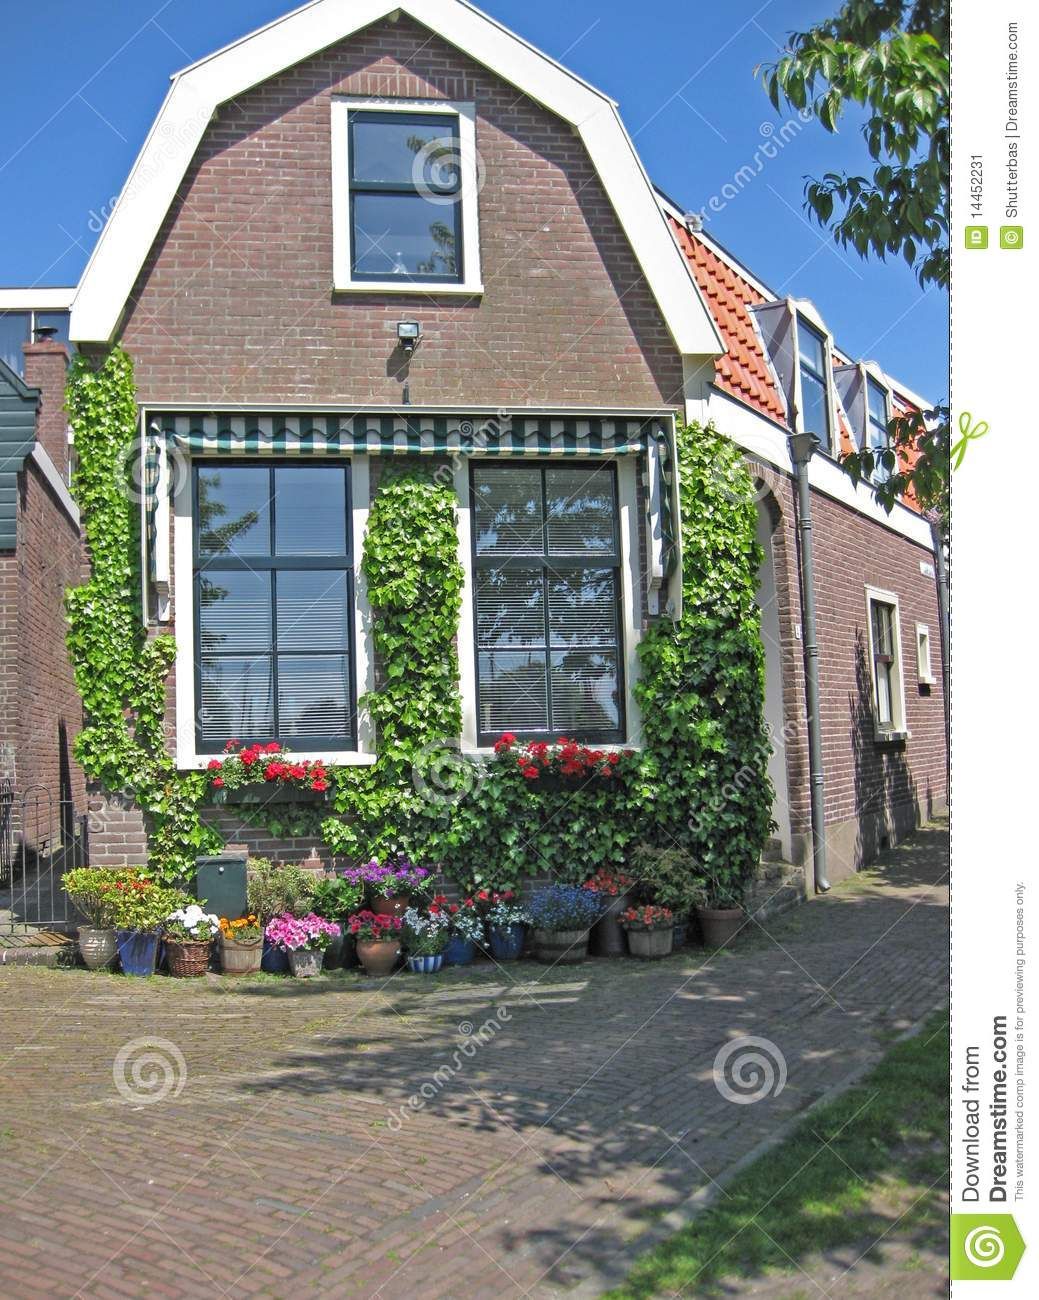 Dutch house stock image image 14452231 for Dutch house